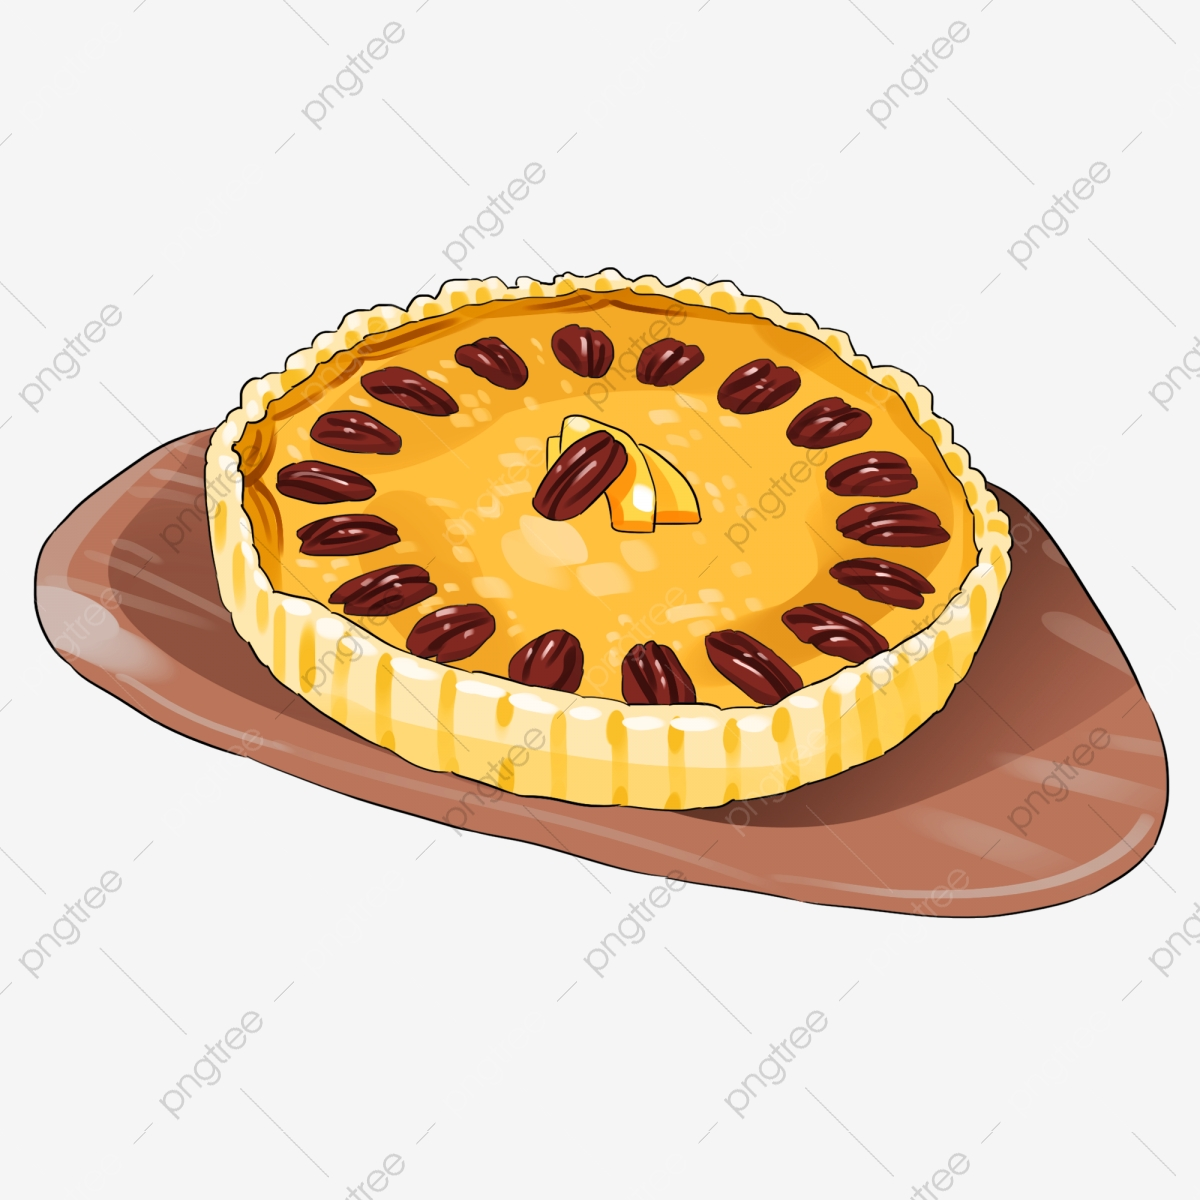 hight resolution of commercial use resource upgrade to premium plan and get license authorization upgradenow pie pie clipart